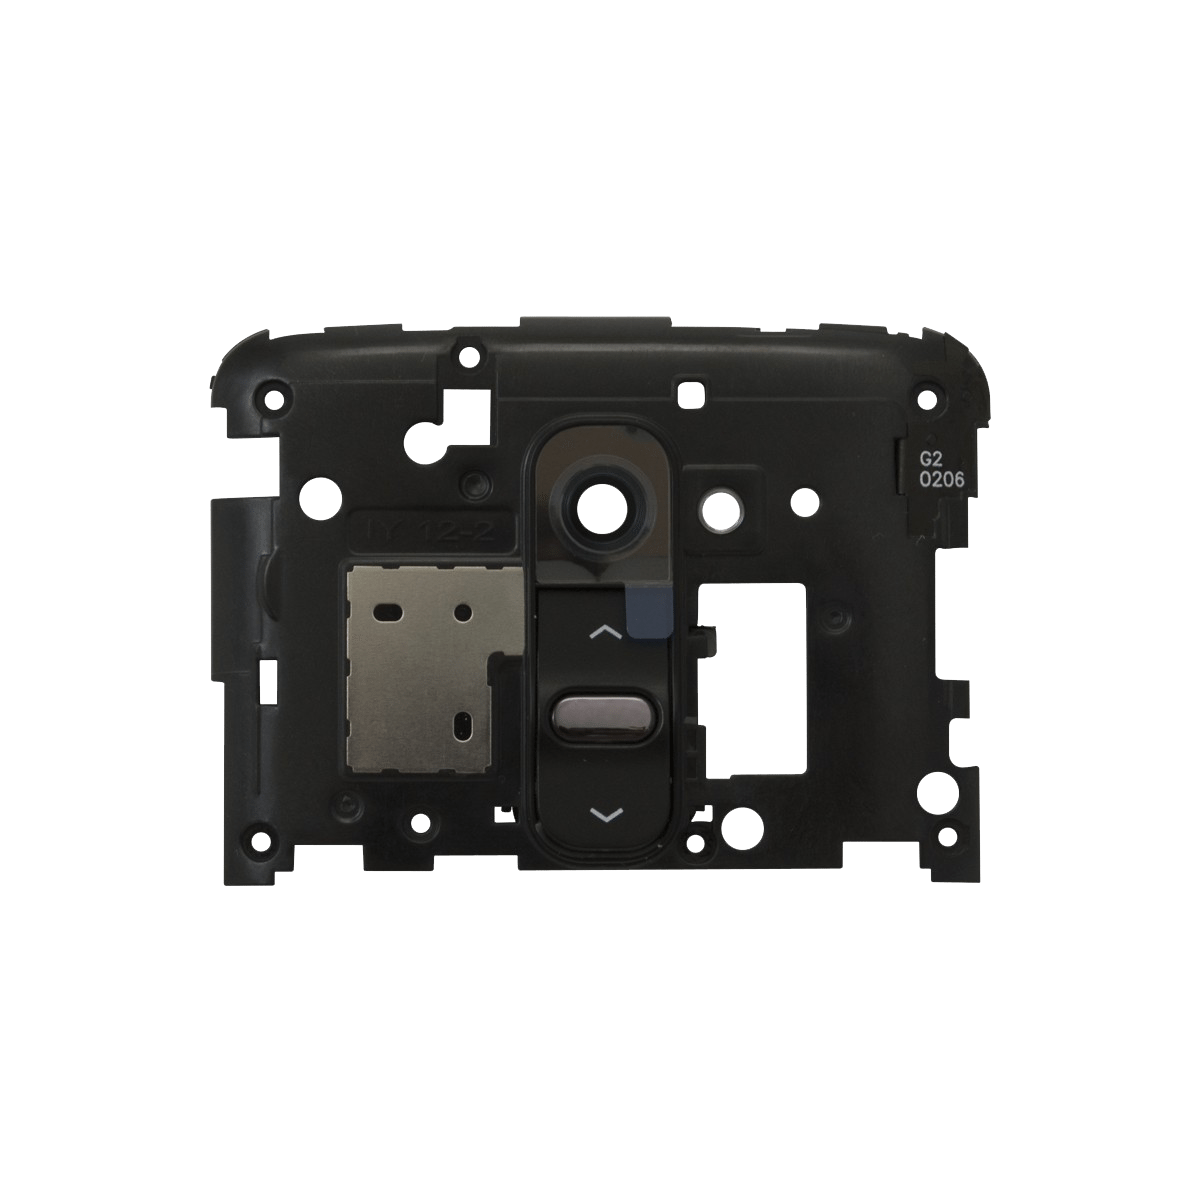 LG G2 Rear Housing Backplate with Camera Lens & Volume Buttons